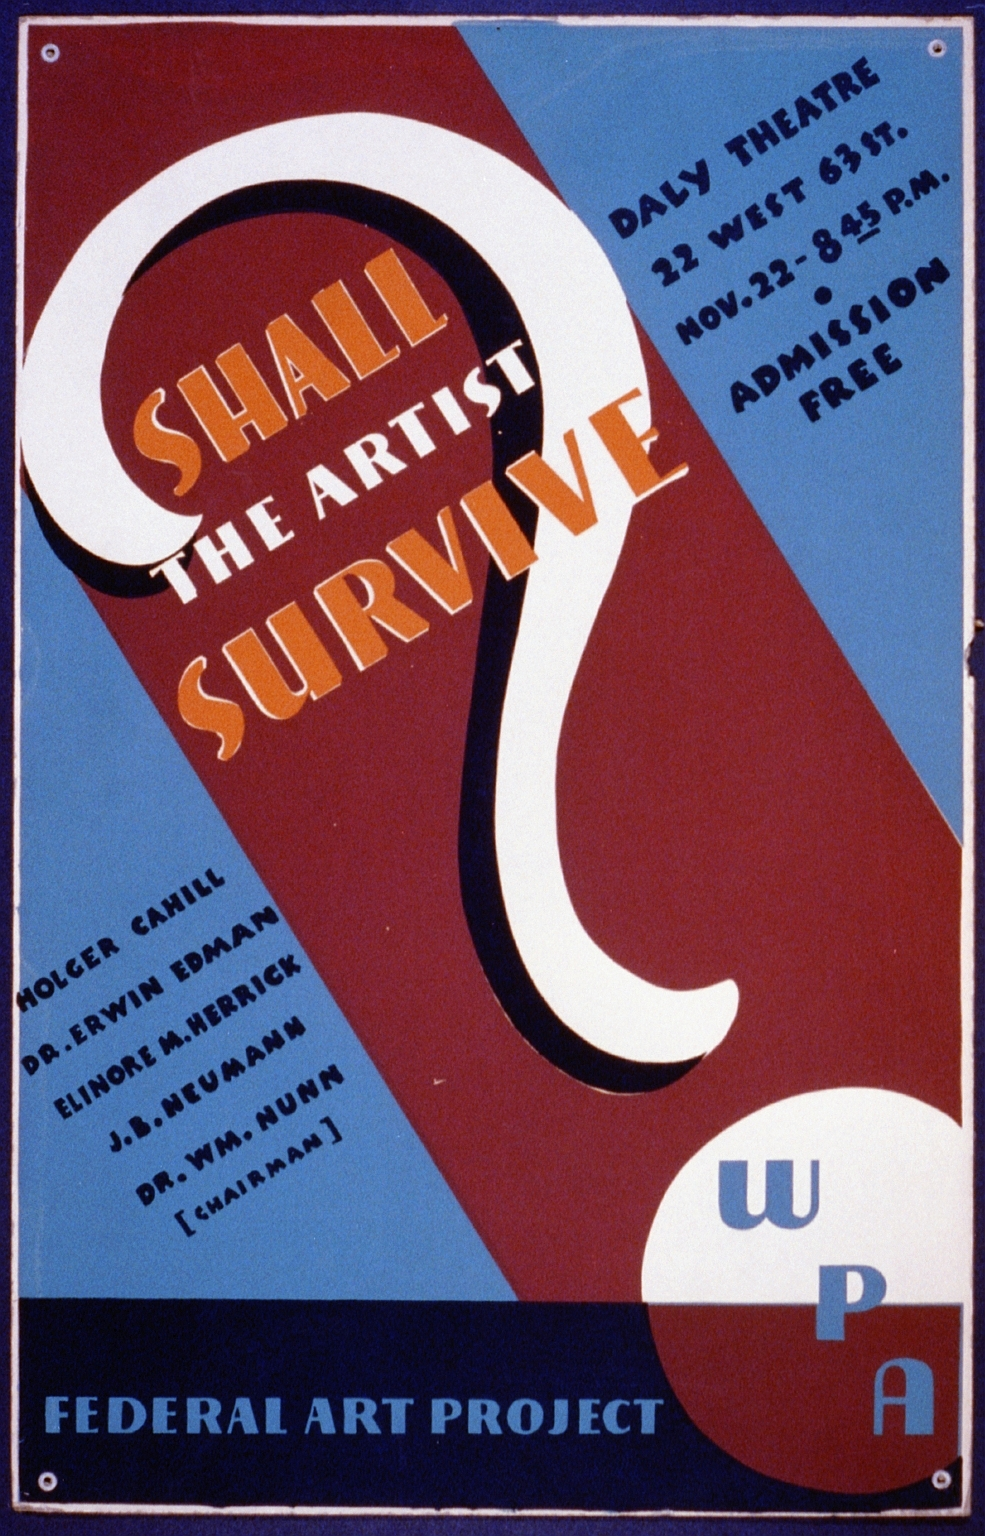 A poster from the Federal Art Project, a division of the Work Projects Administration, part of Roosevelt's New Deal